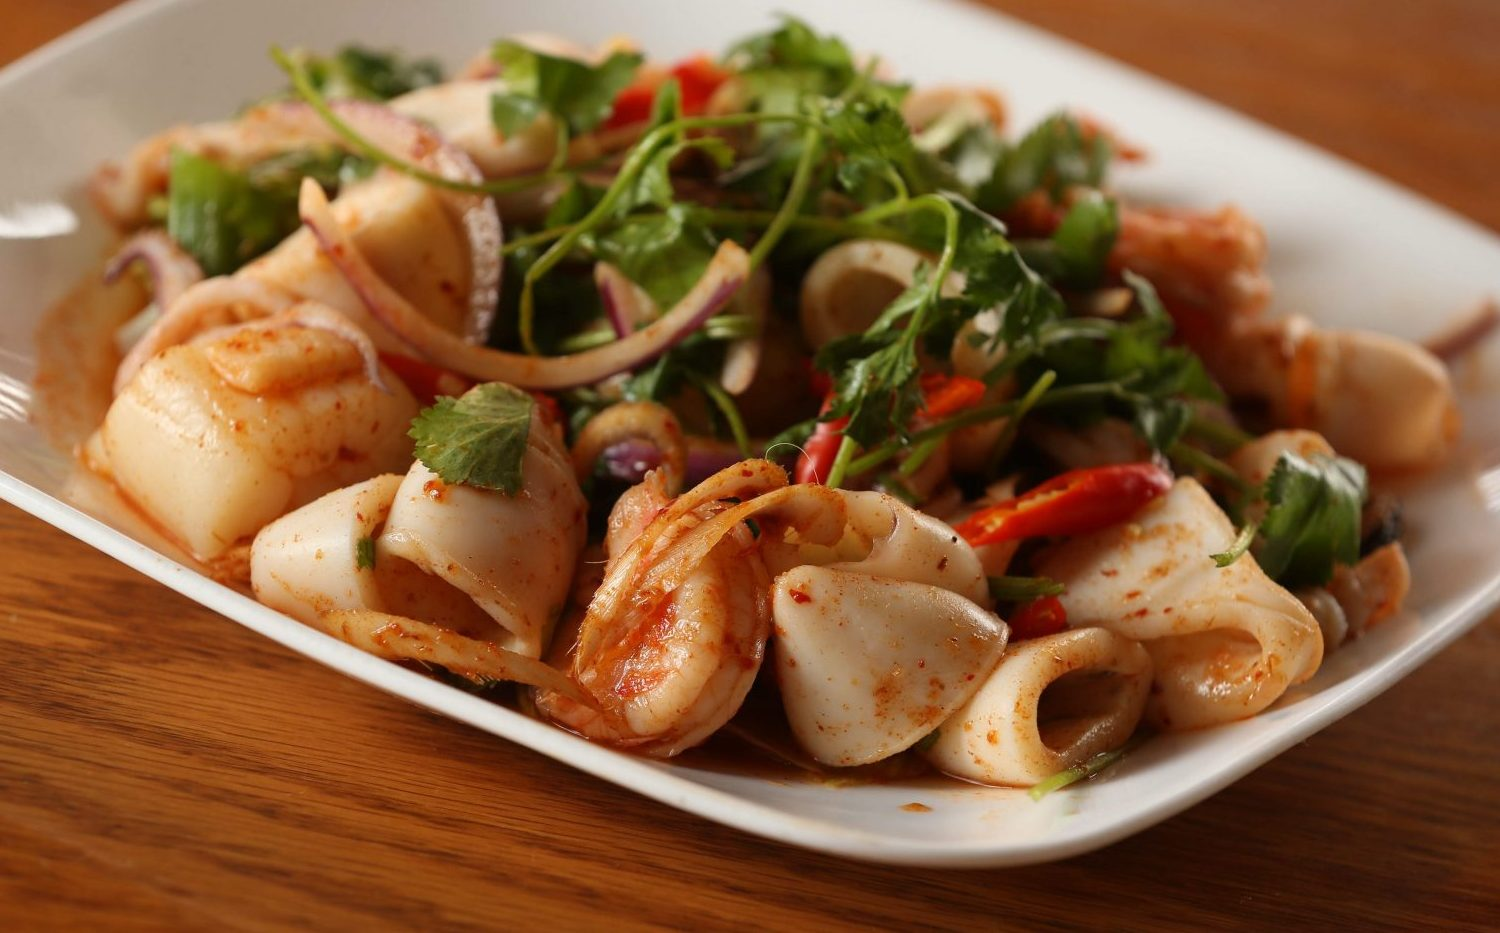 Shrimp, scallops, calamari and mussels with onions, lemon grass, chili paste and lime juice.